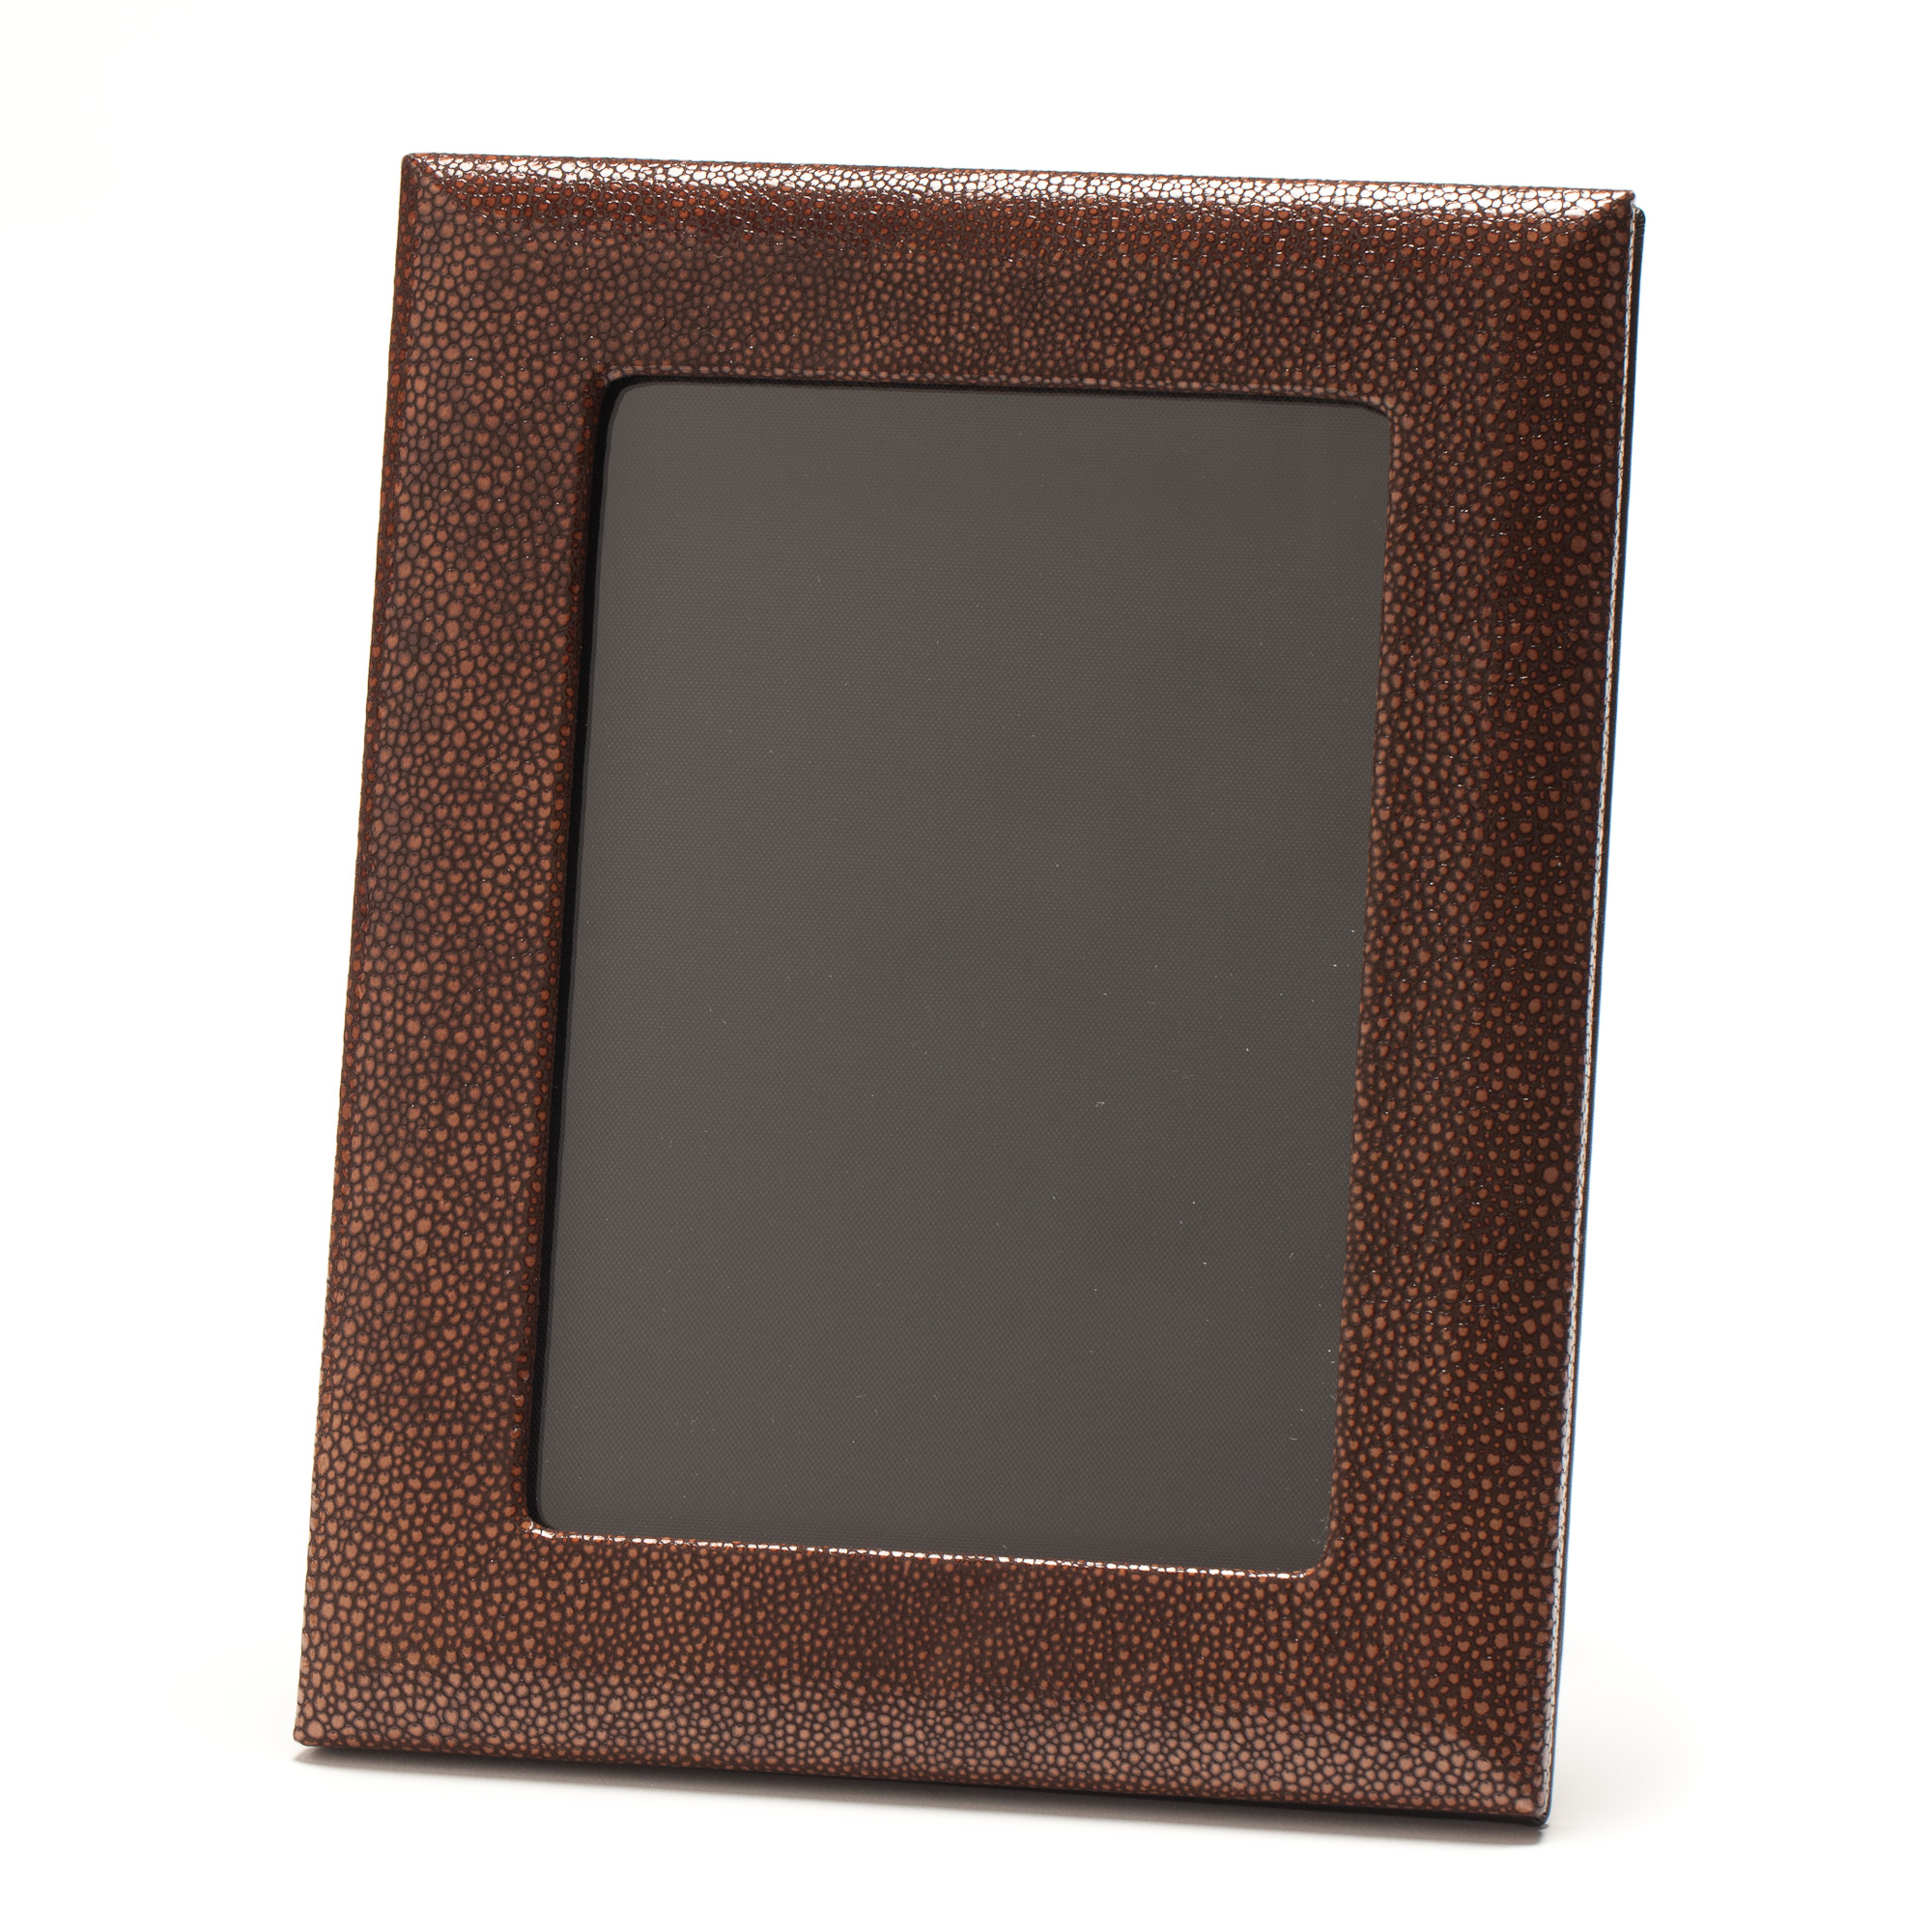 Graphic Image Shagreen Leather Frame, 5x7